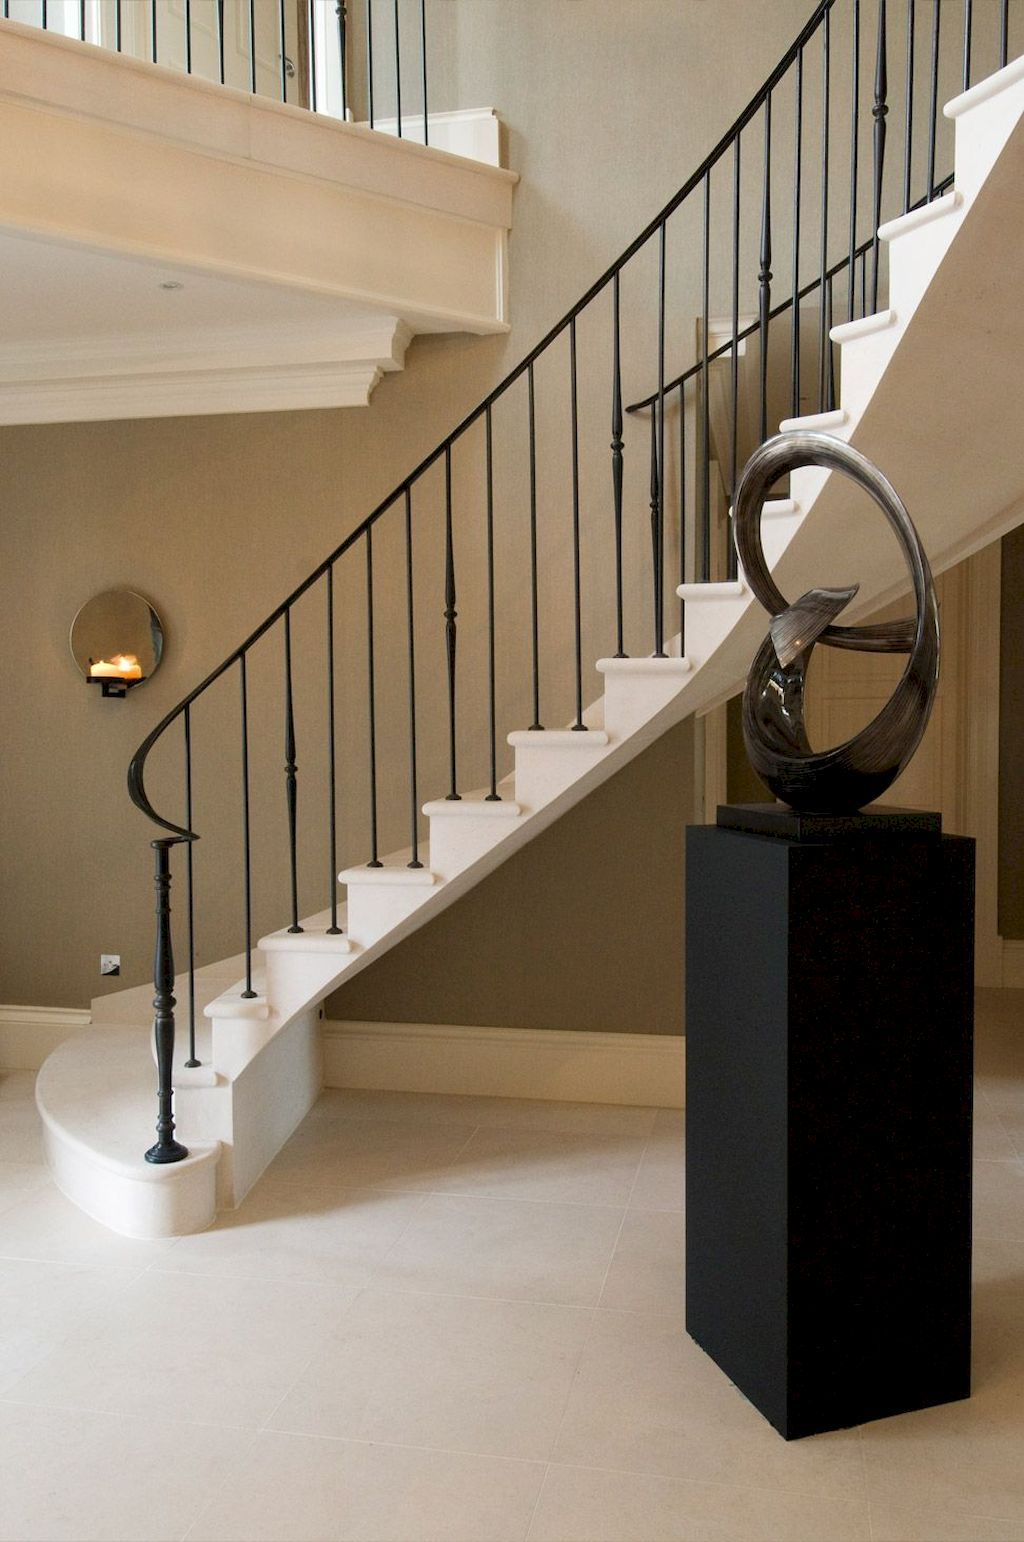 Stair Railings Settling Is Easier Than You Think Interior Stair Railing Modern Staircase Interior Stairs